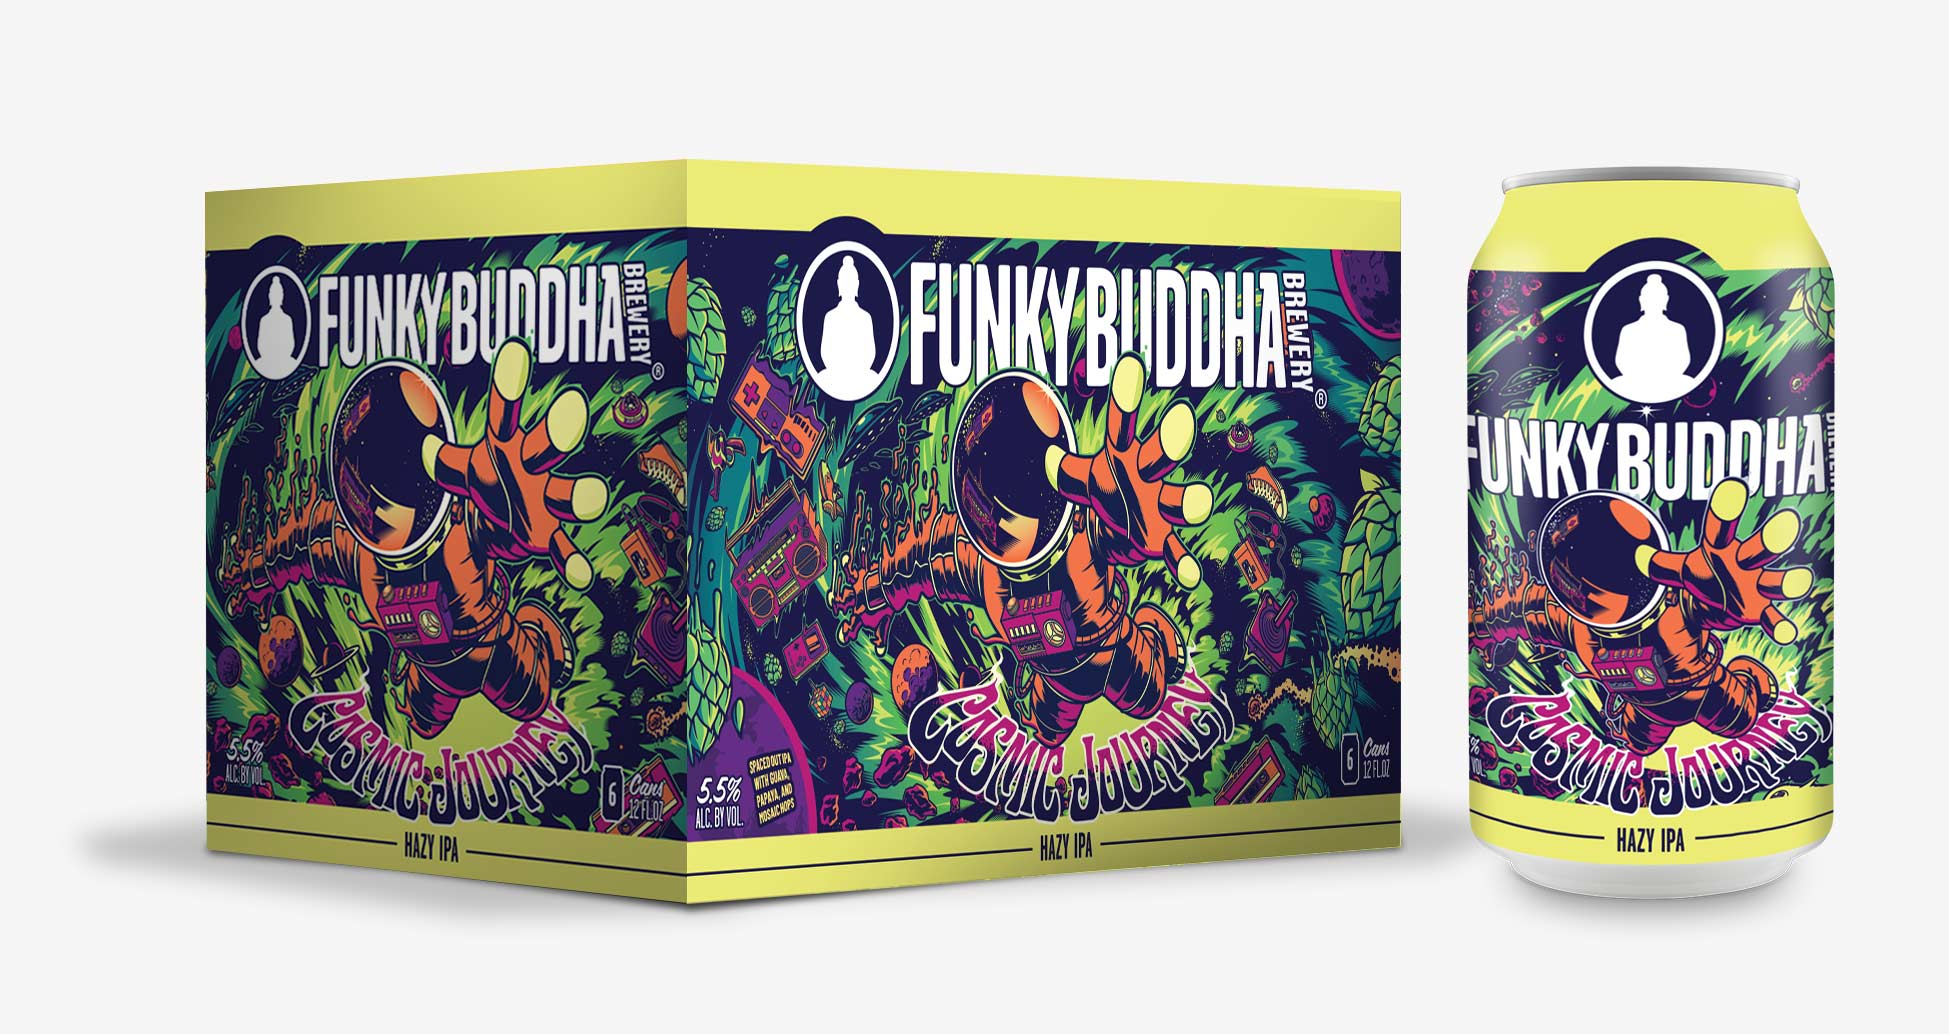 Funky Buddha Brewery Cosmic Journey Hazy IPA Artwork Illustration and Design